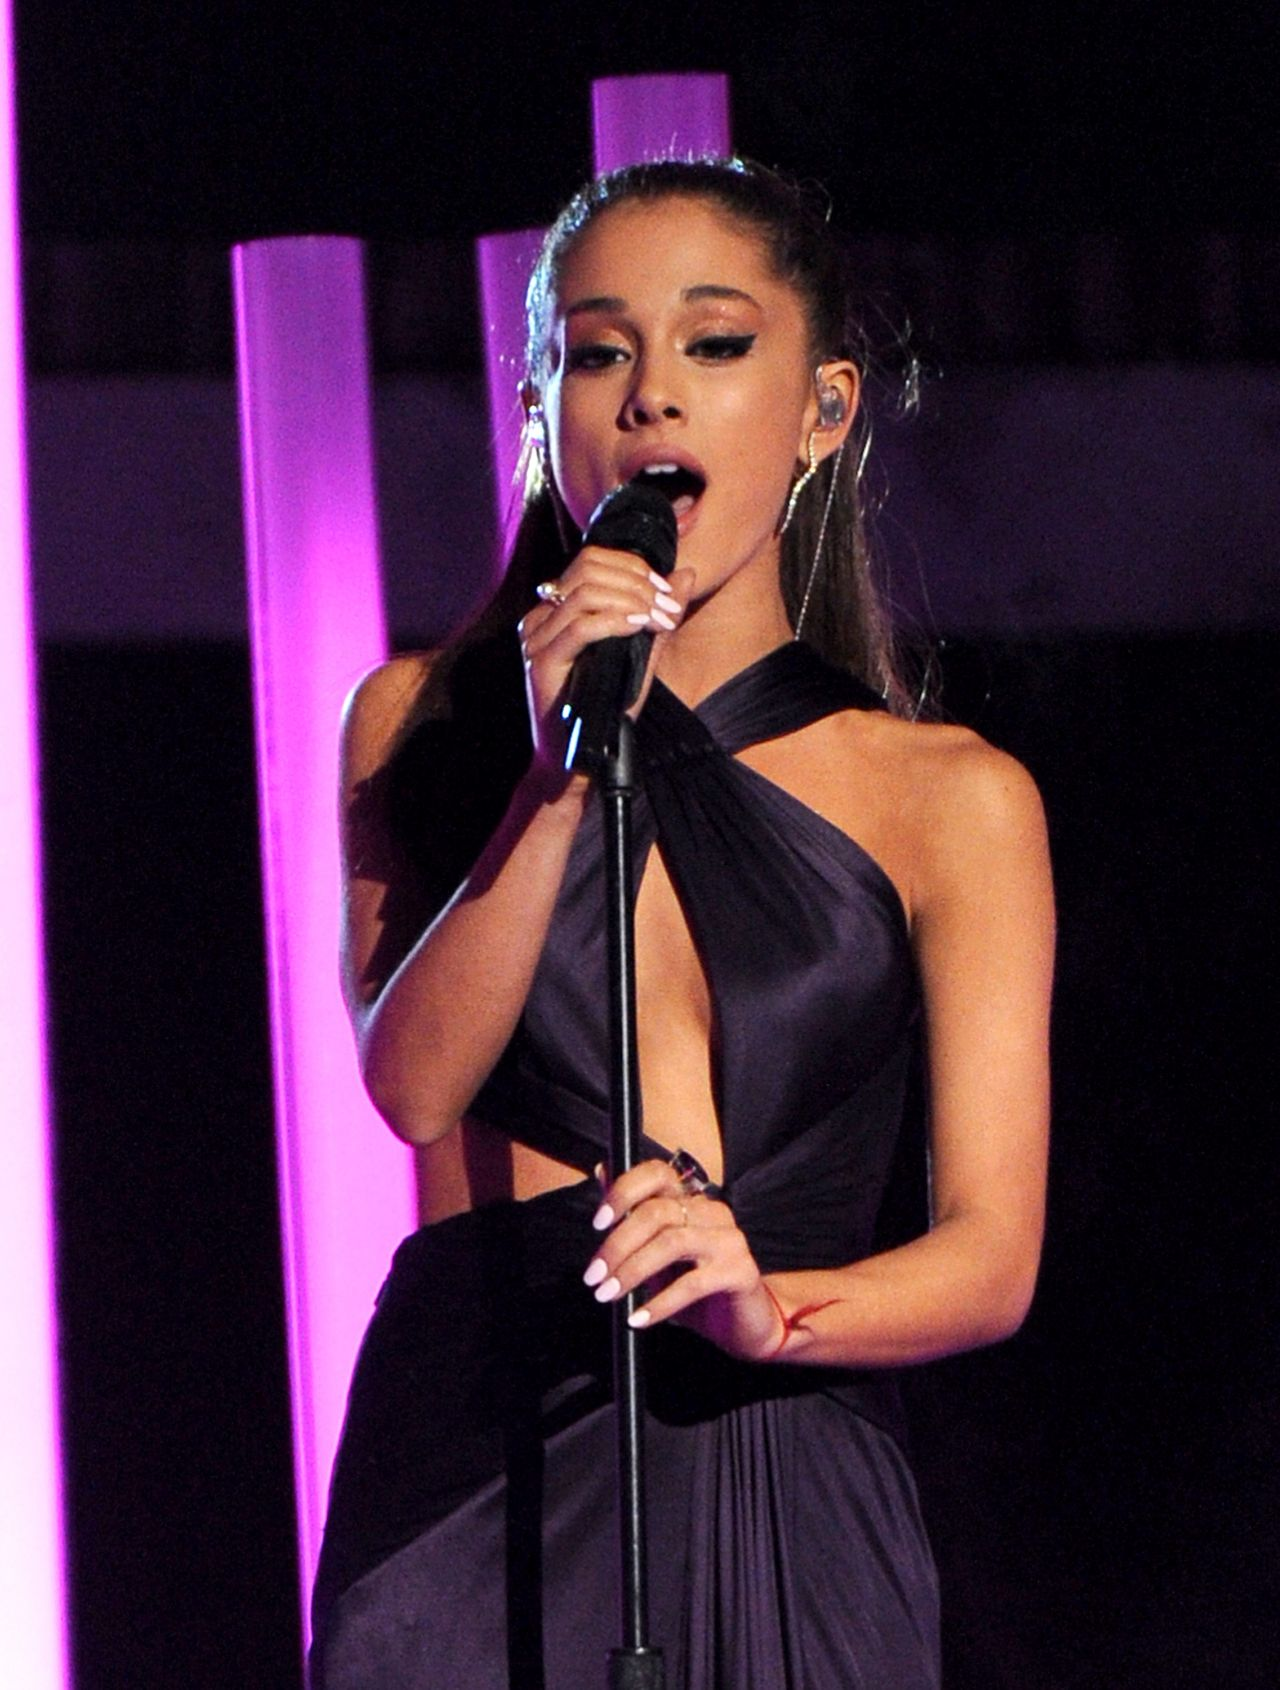 ariana-grande-performs-at-2015-grammy-awards-in-los-angeles_1